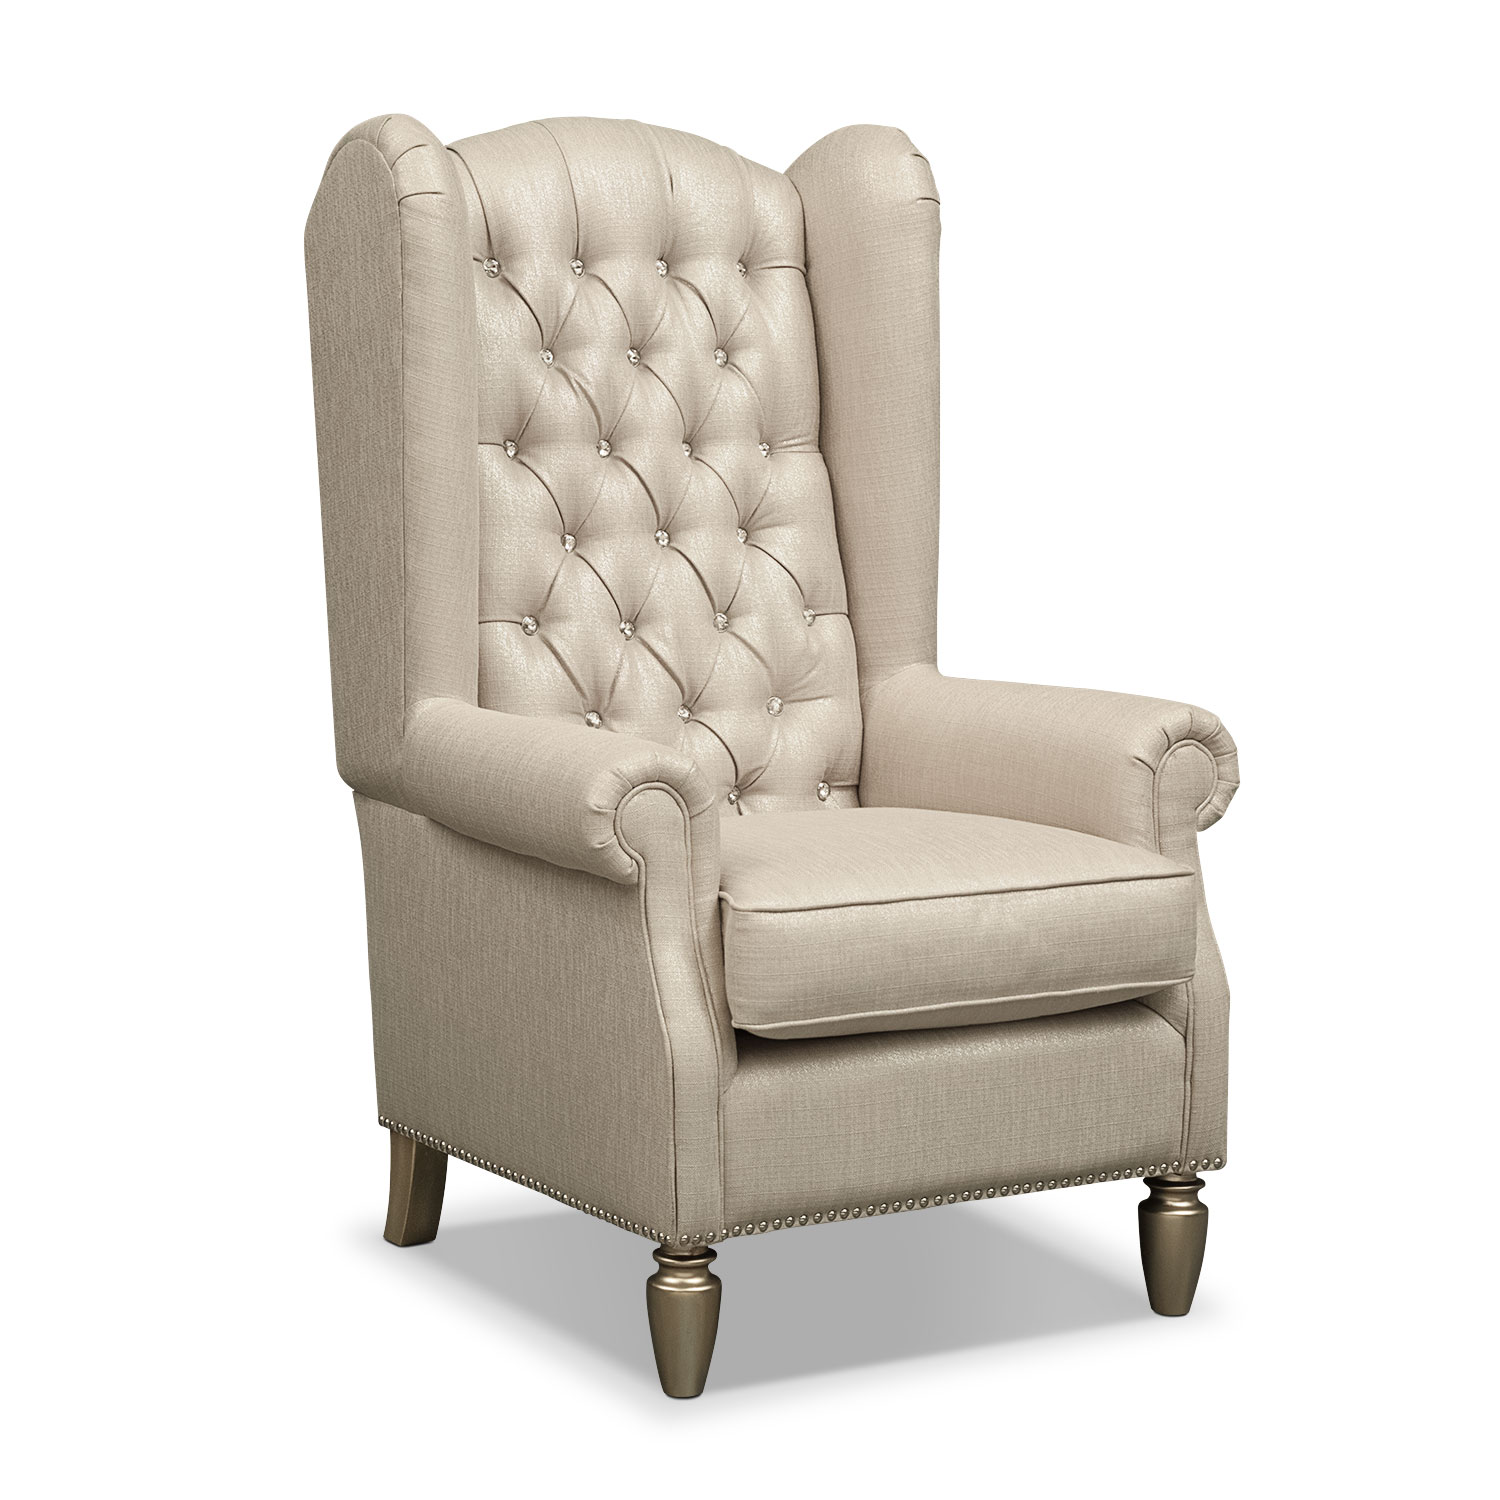 Breathtaking accent chair for home furniture ideas with accent chairs with arms and accent chairs for living room